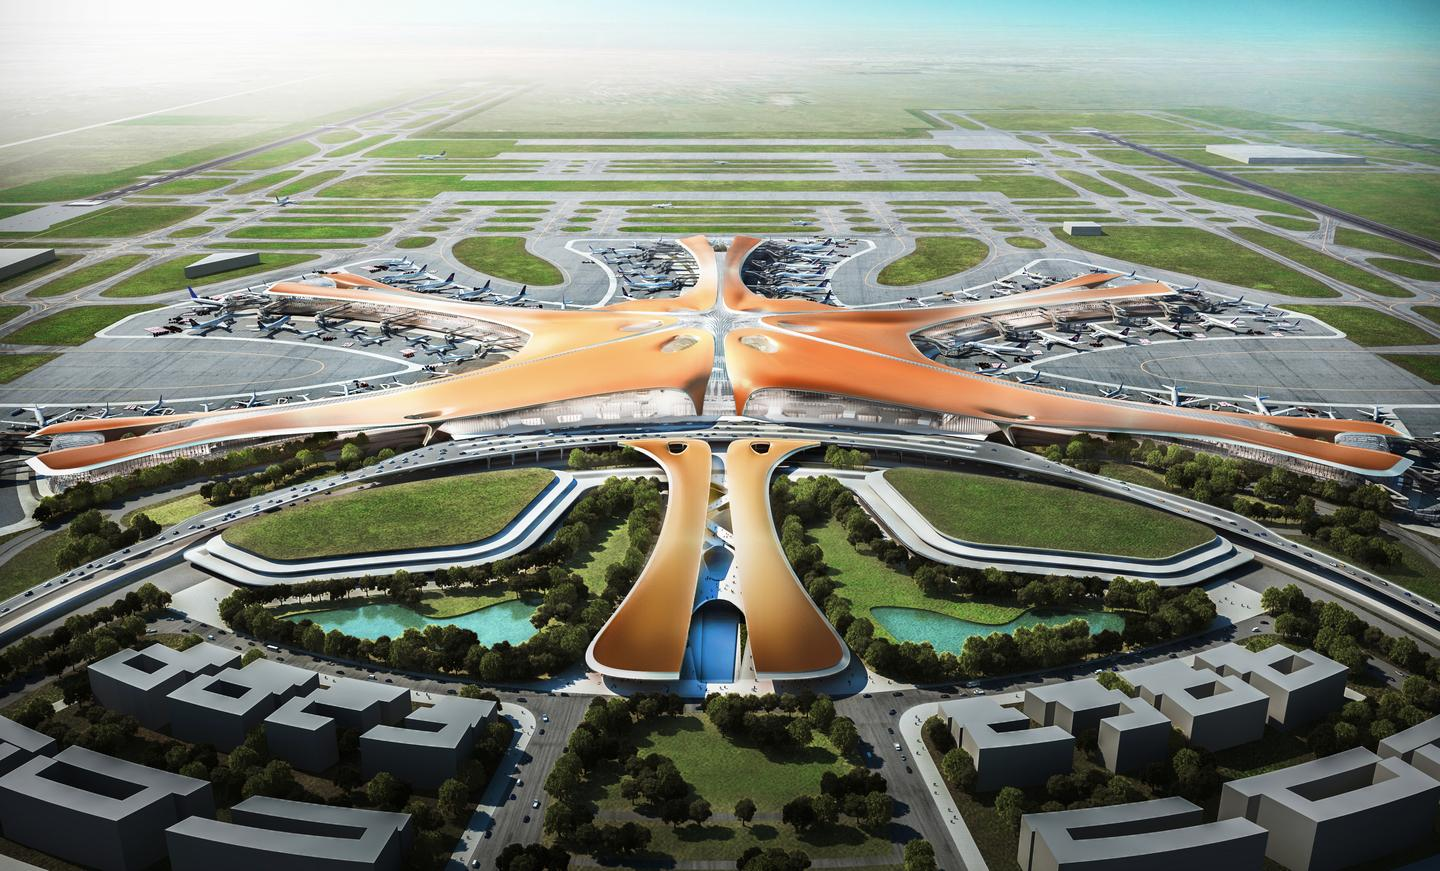 The Beijing New Airport Terminal Building will be constructed in Beijing's Daxing District and take the form of a massive mutant starfish (Image: Zaha Hadid Architects)